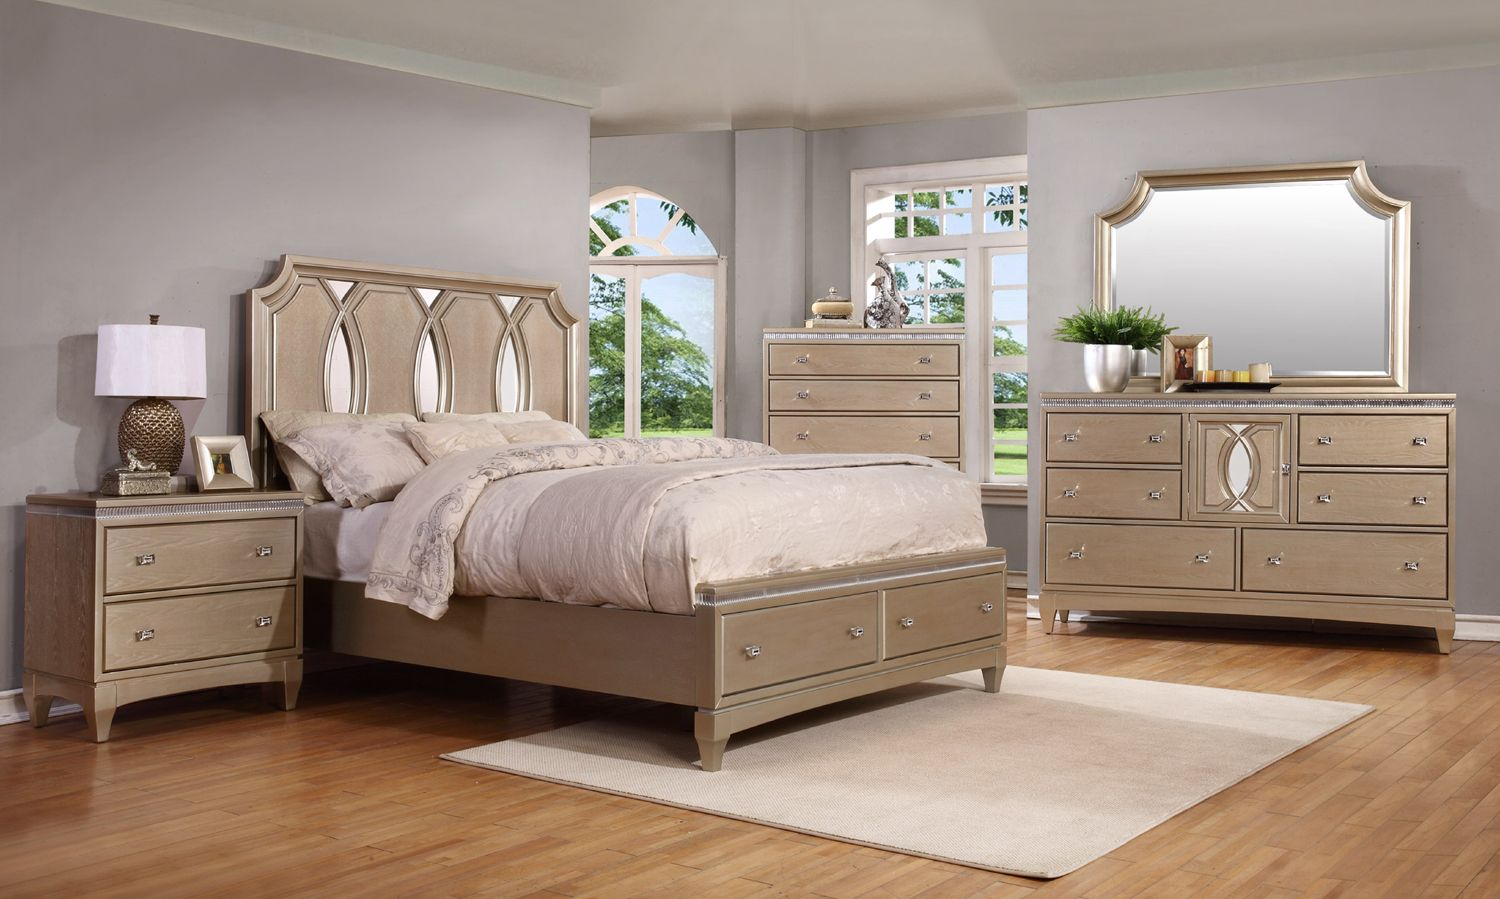 K Elite Patricia Bedroom Collection This Decorative Bed Set Is A